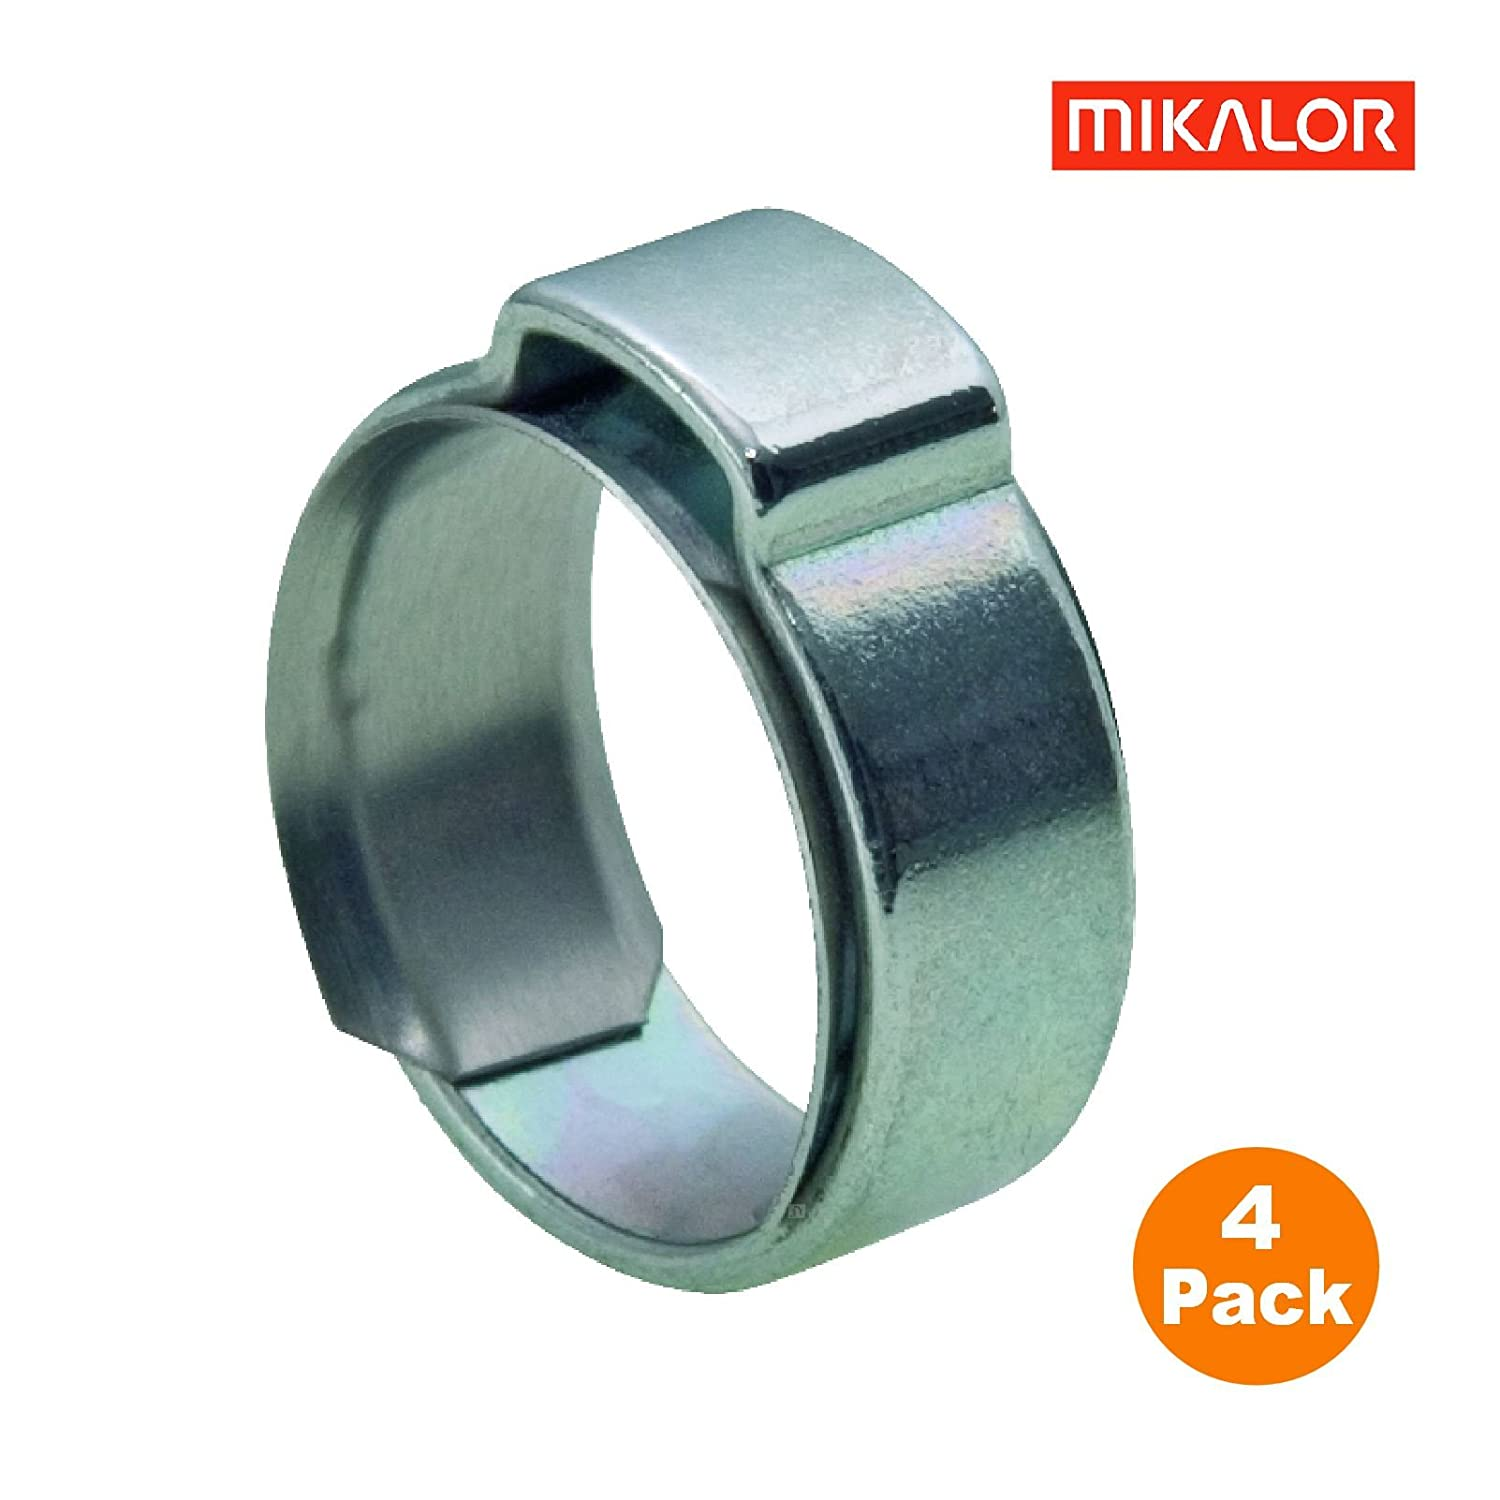 Hose Clamps 4 x Mikalor W1 Single Ear O Clips with Insert Stepless Inner Ring 8.0-9.5mm